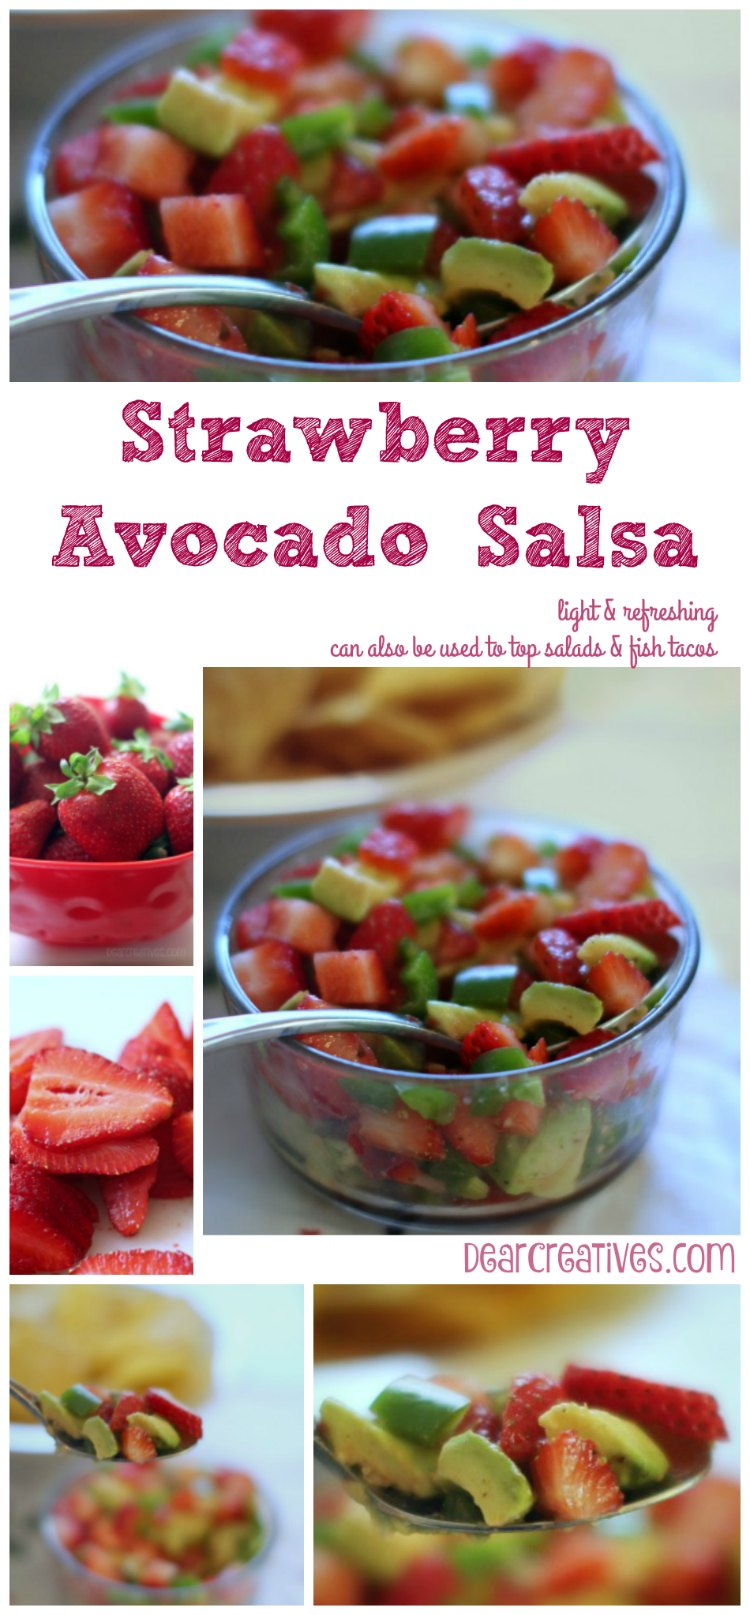 Appetizer Recipes: Strawberry Avocado Salsa A Sweet Spicy Favorite!